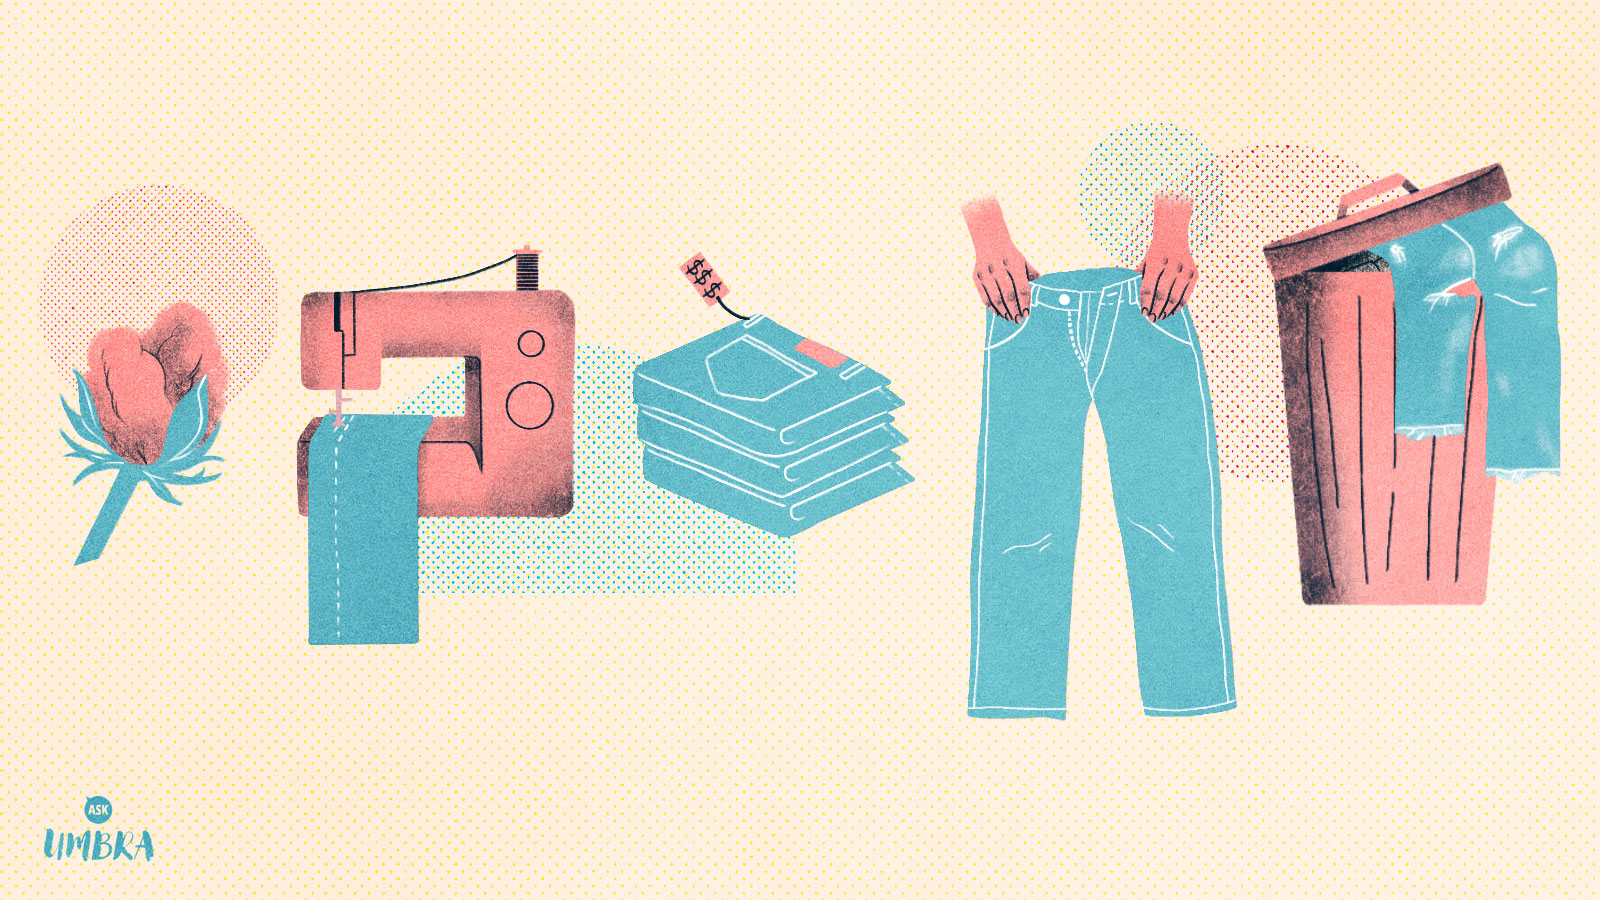 An illustration of (from left to right) a cotton bud, a sewing machine sewing jeans, a stack of jeans with a price tag, a pair of hands holding up jeans, and a garbage can with jeans hanging out of them.